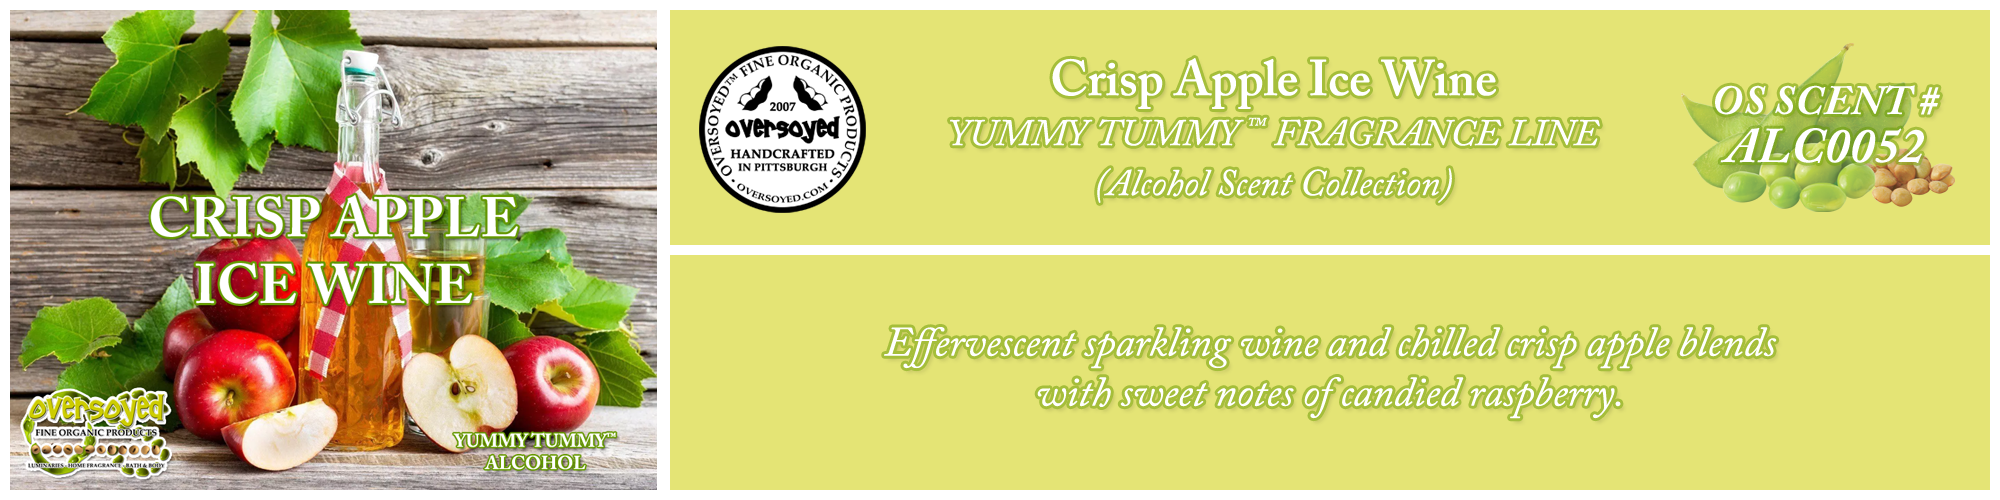 Crisp Apple Ice Wine Handcrafted Products Collection